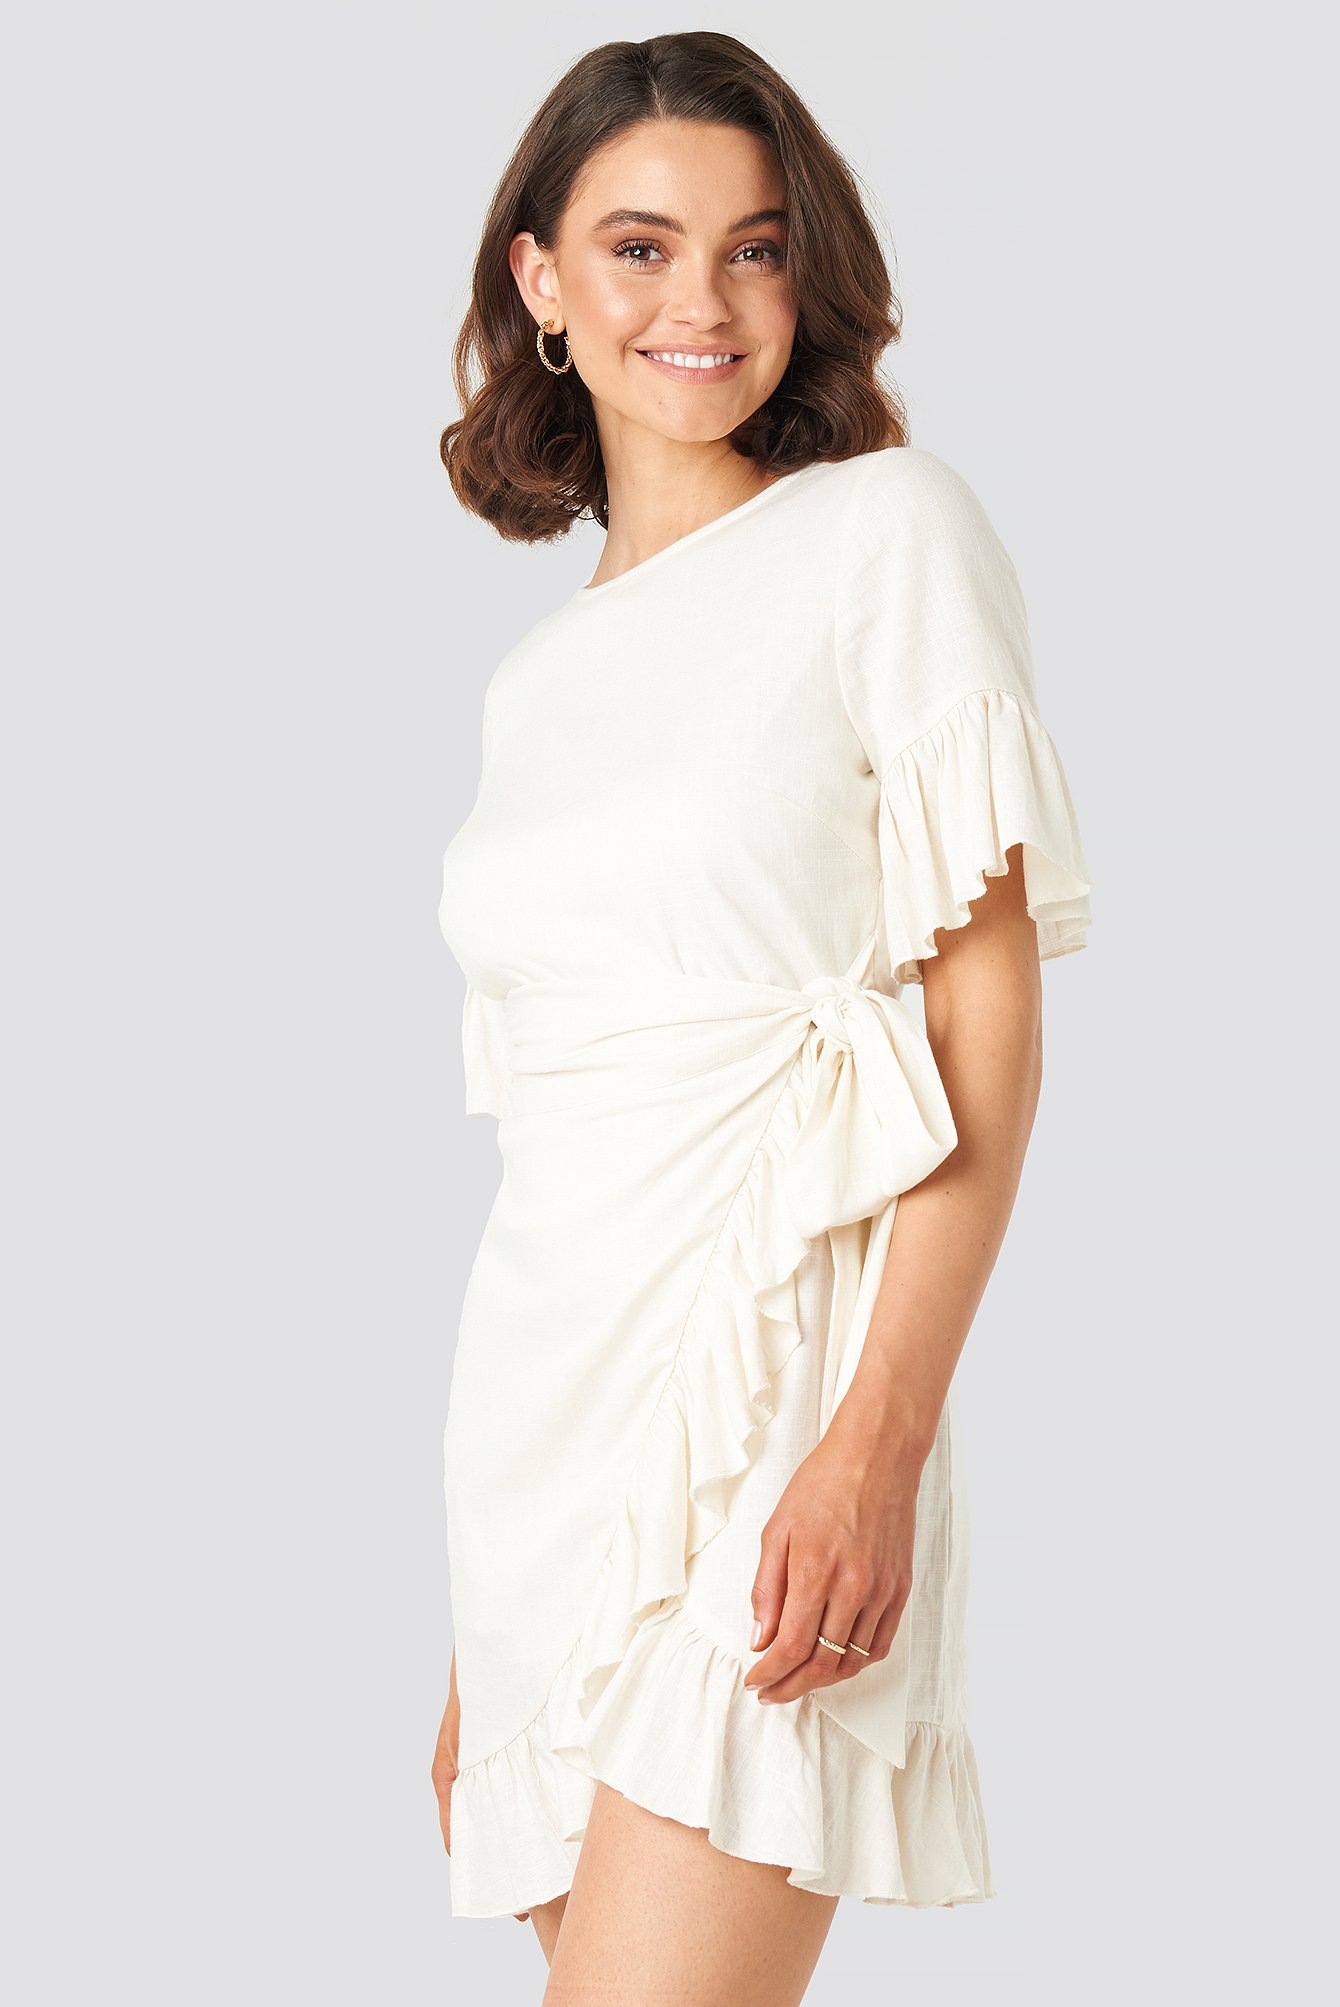 Queen Of Jetlags X Na-kd Linen Mix Frill Detailed Dress White In Off White